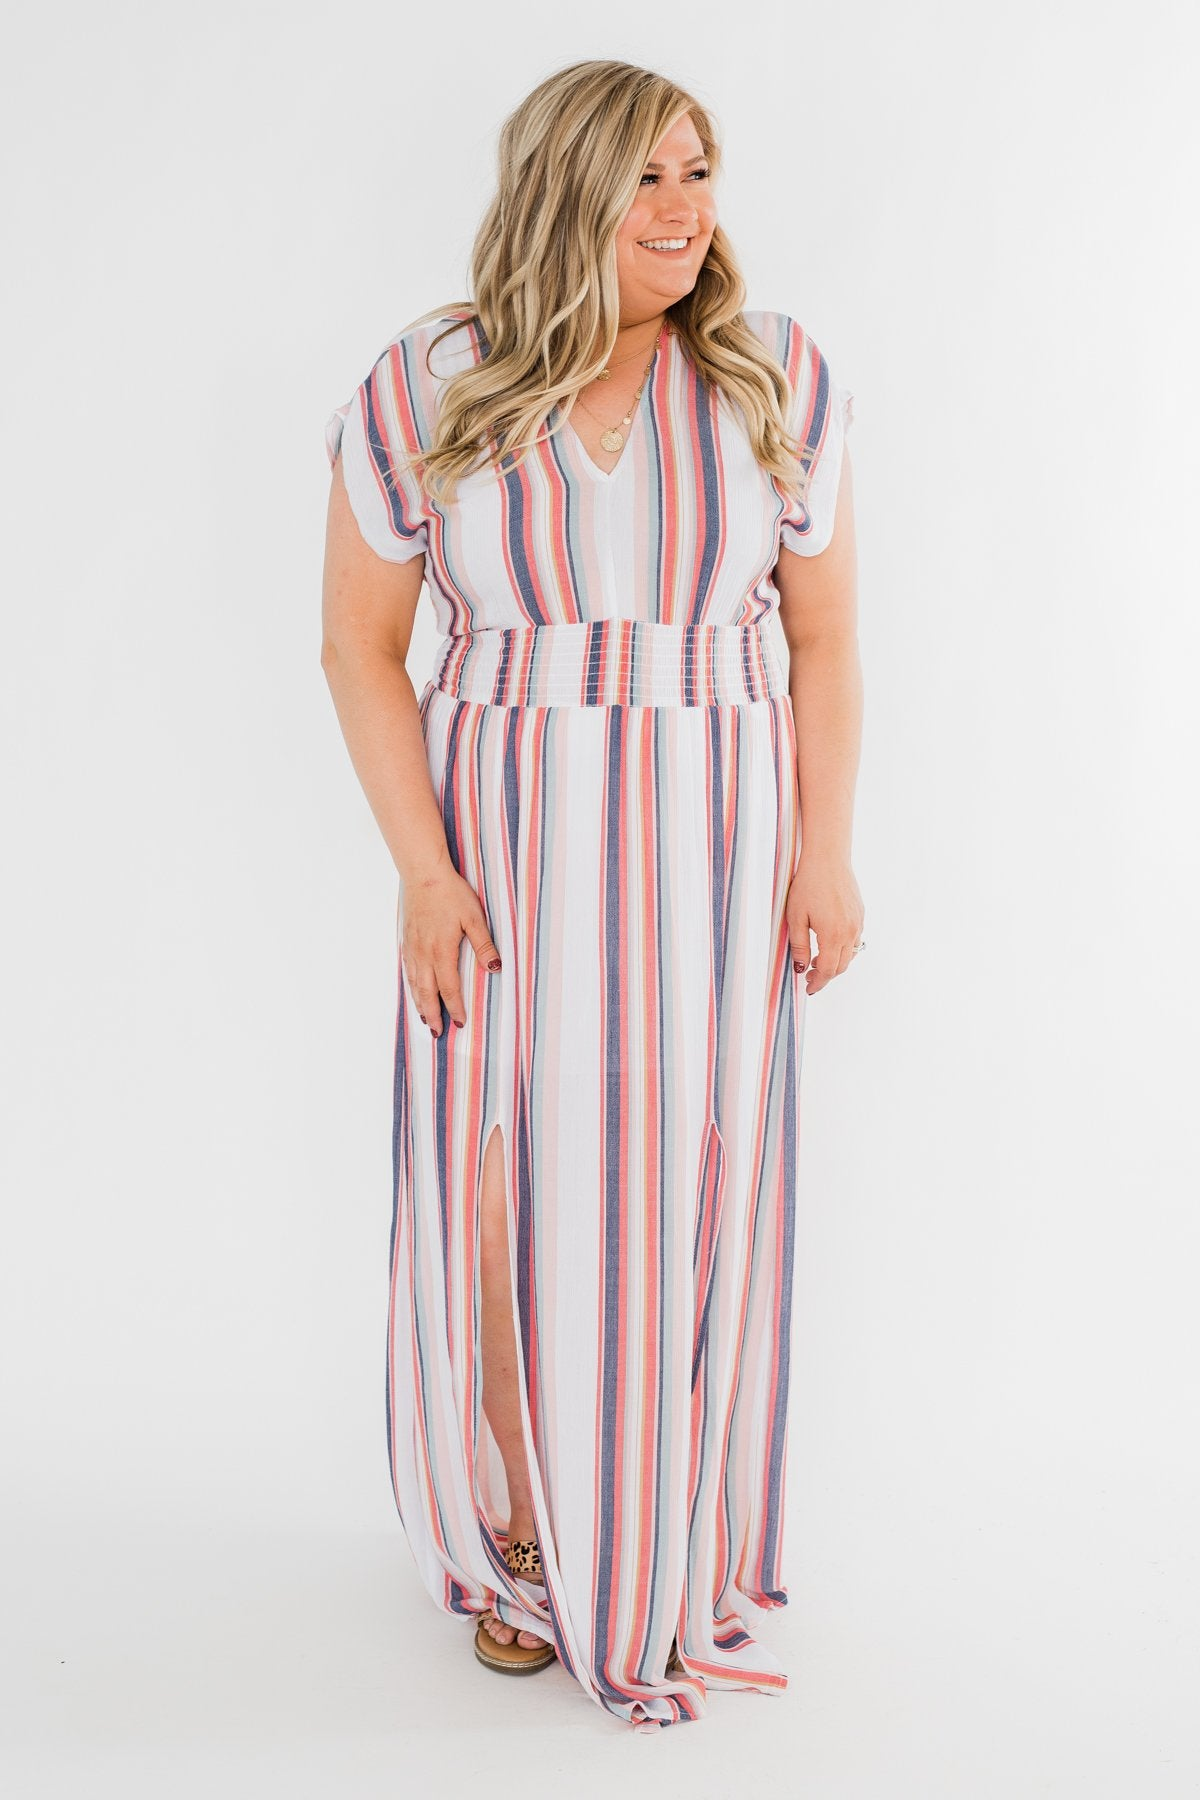 True To You Colorful Maxi Dress- Multi-Colored